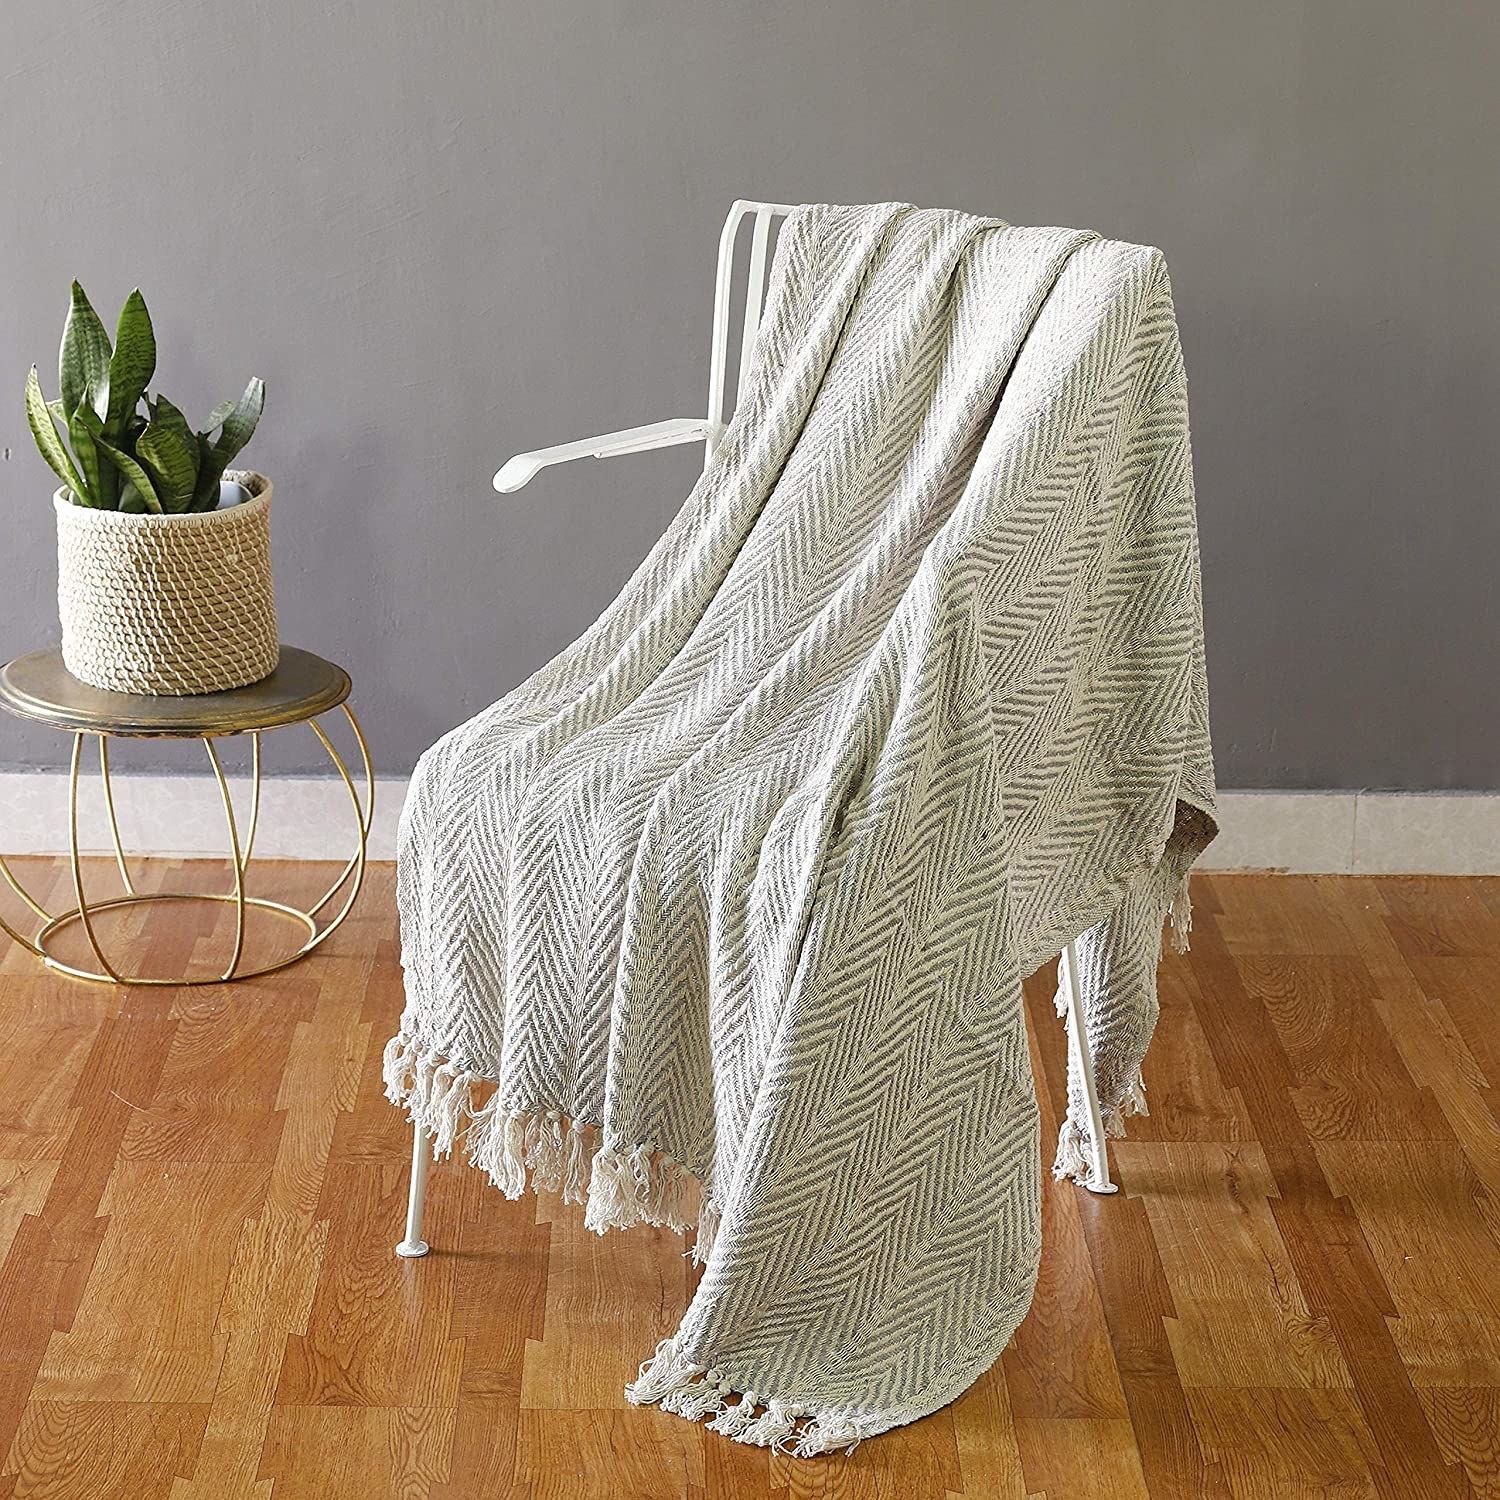 A white blanket with a tight chevron print in grey draped across a chair.